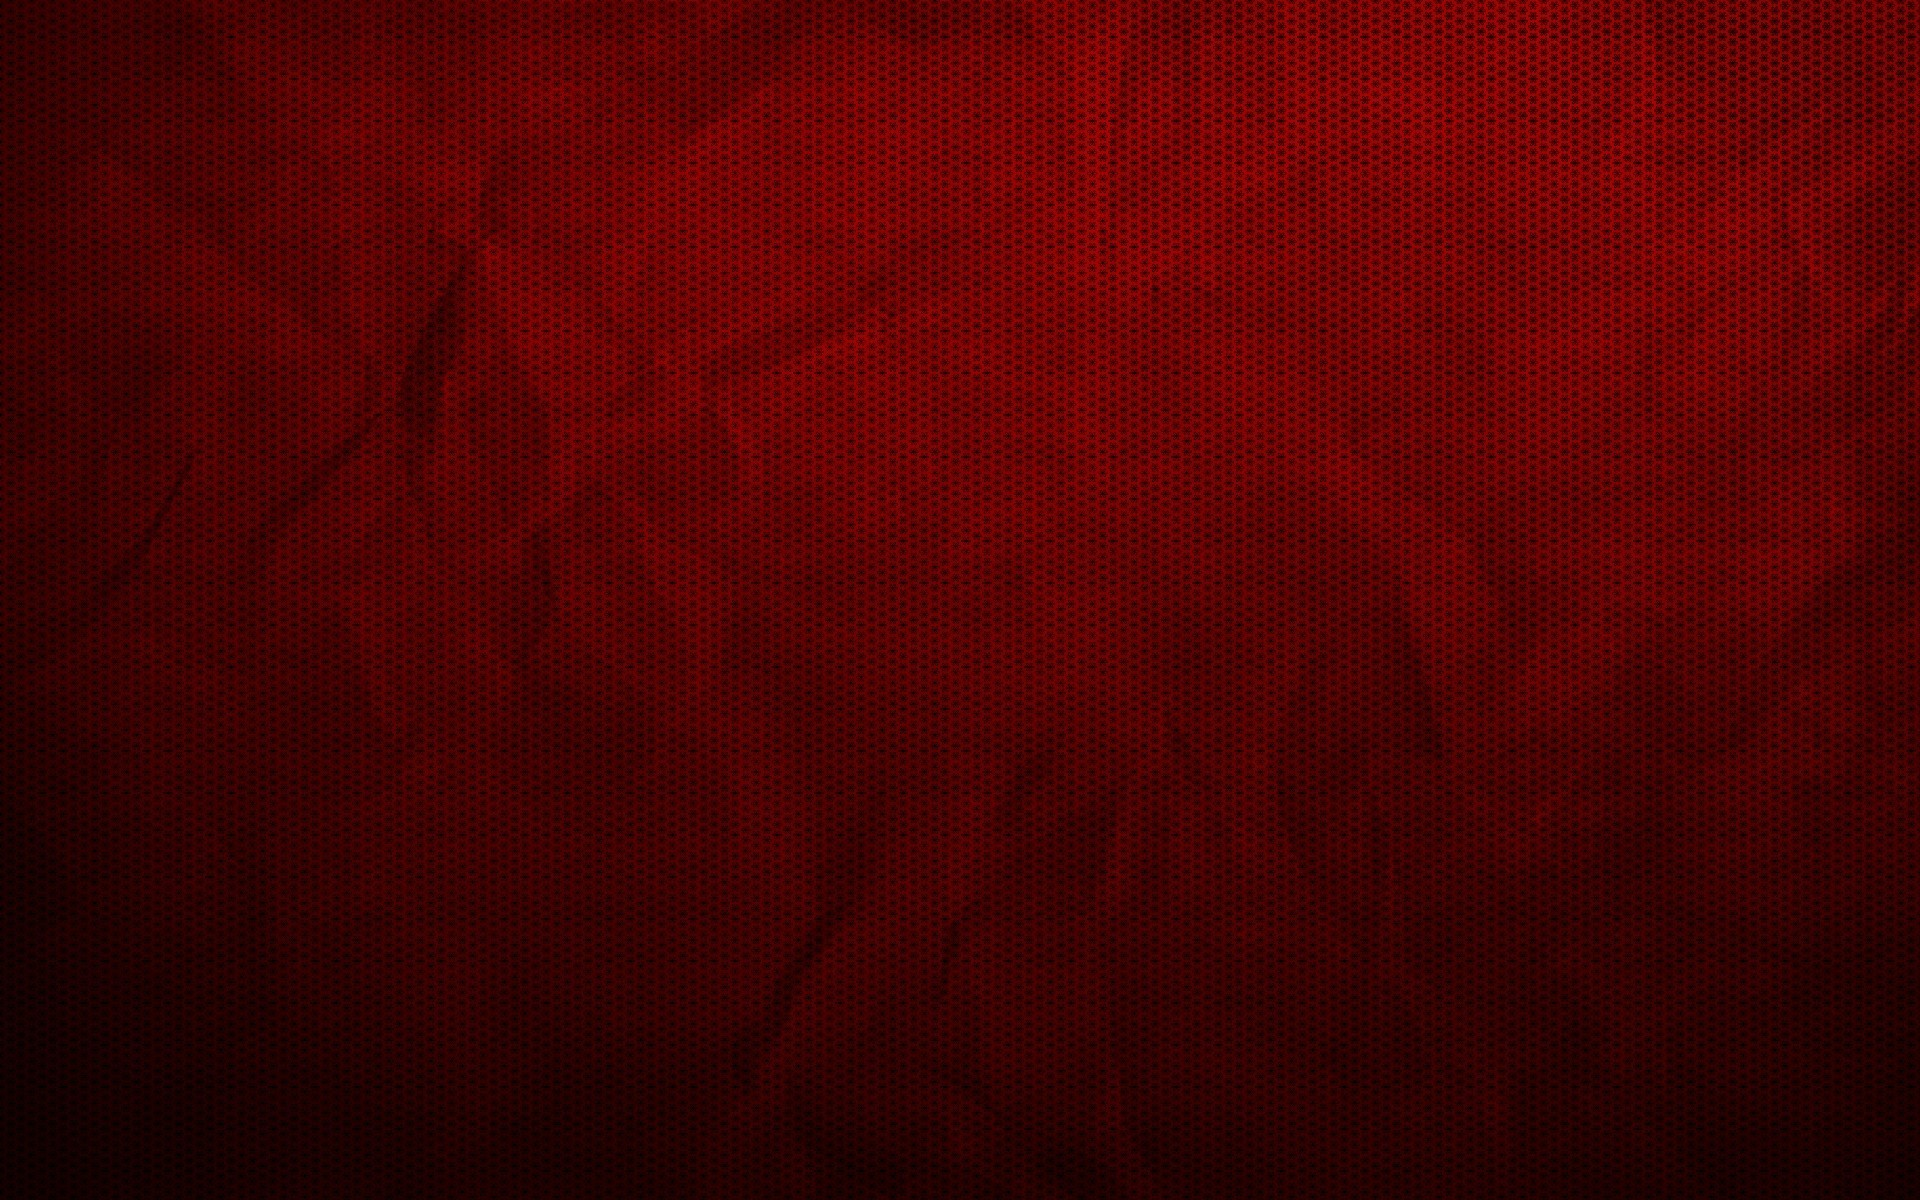 maroon backgrounds 58 images getwallpapers com